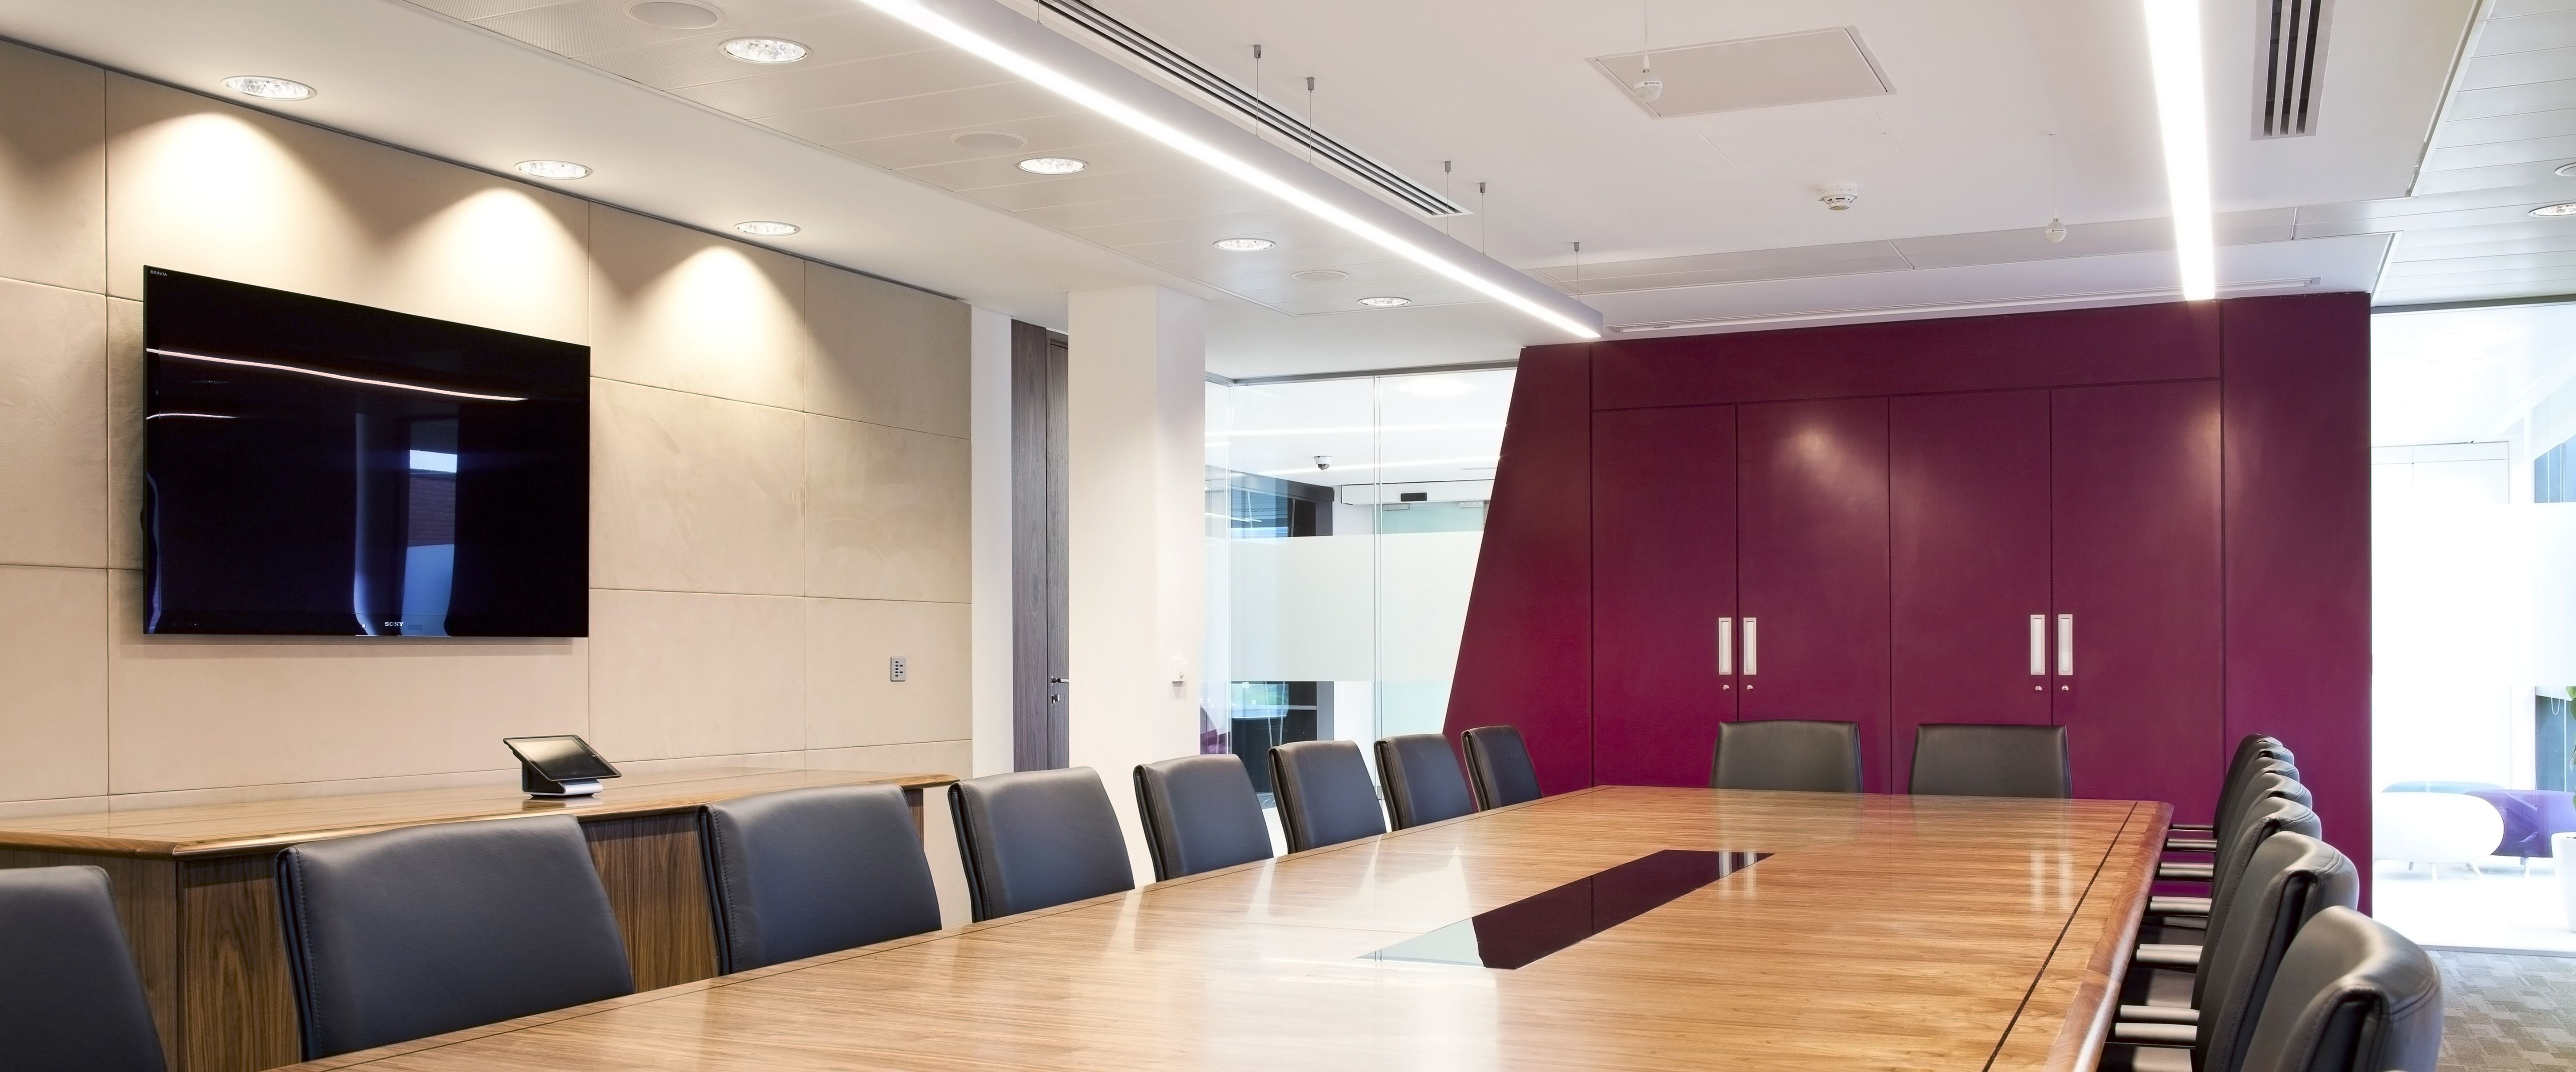 Meeting Room Design Interior Designs Remarkable Office Meeting Room With Long